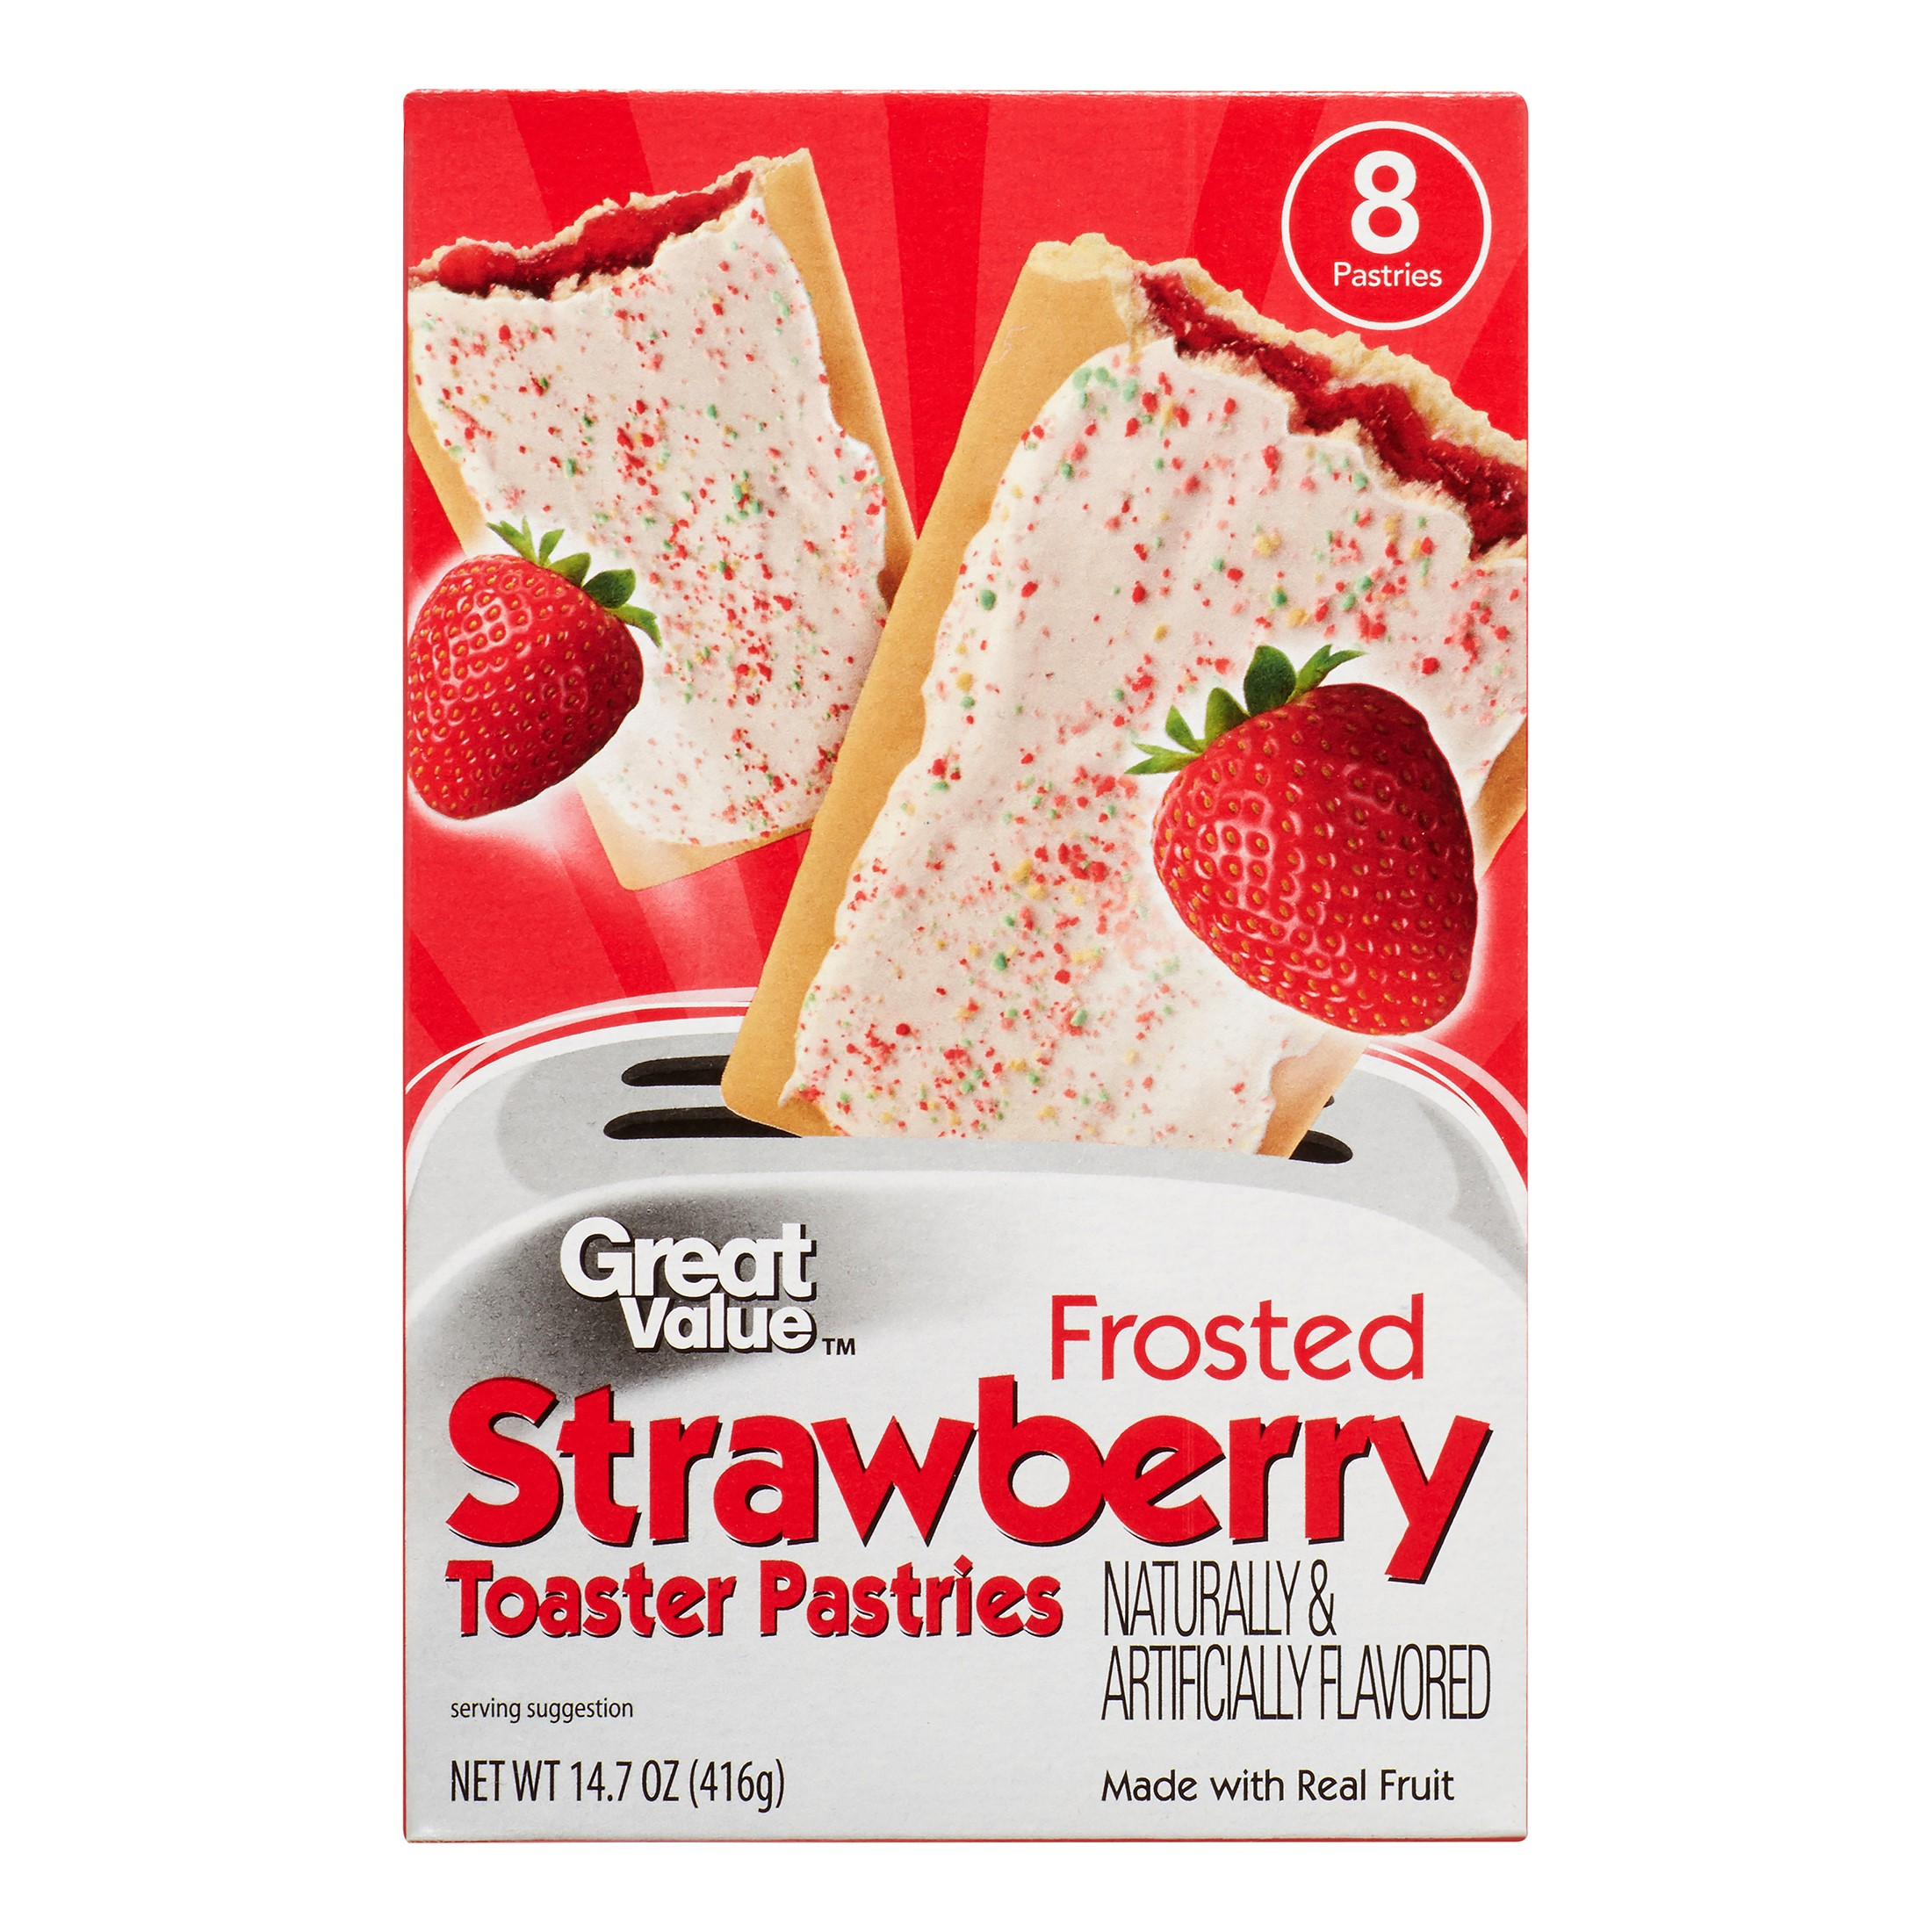 Great Value Frosted Toaster Pastries, Strawberry, 8 Count by Great Value